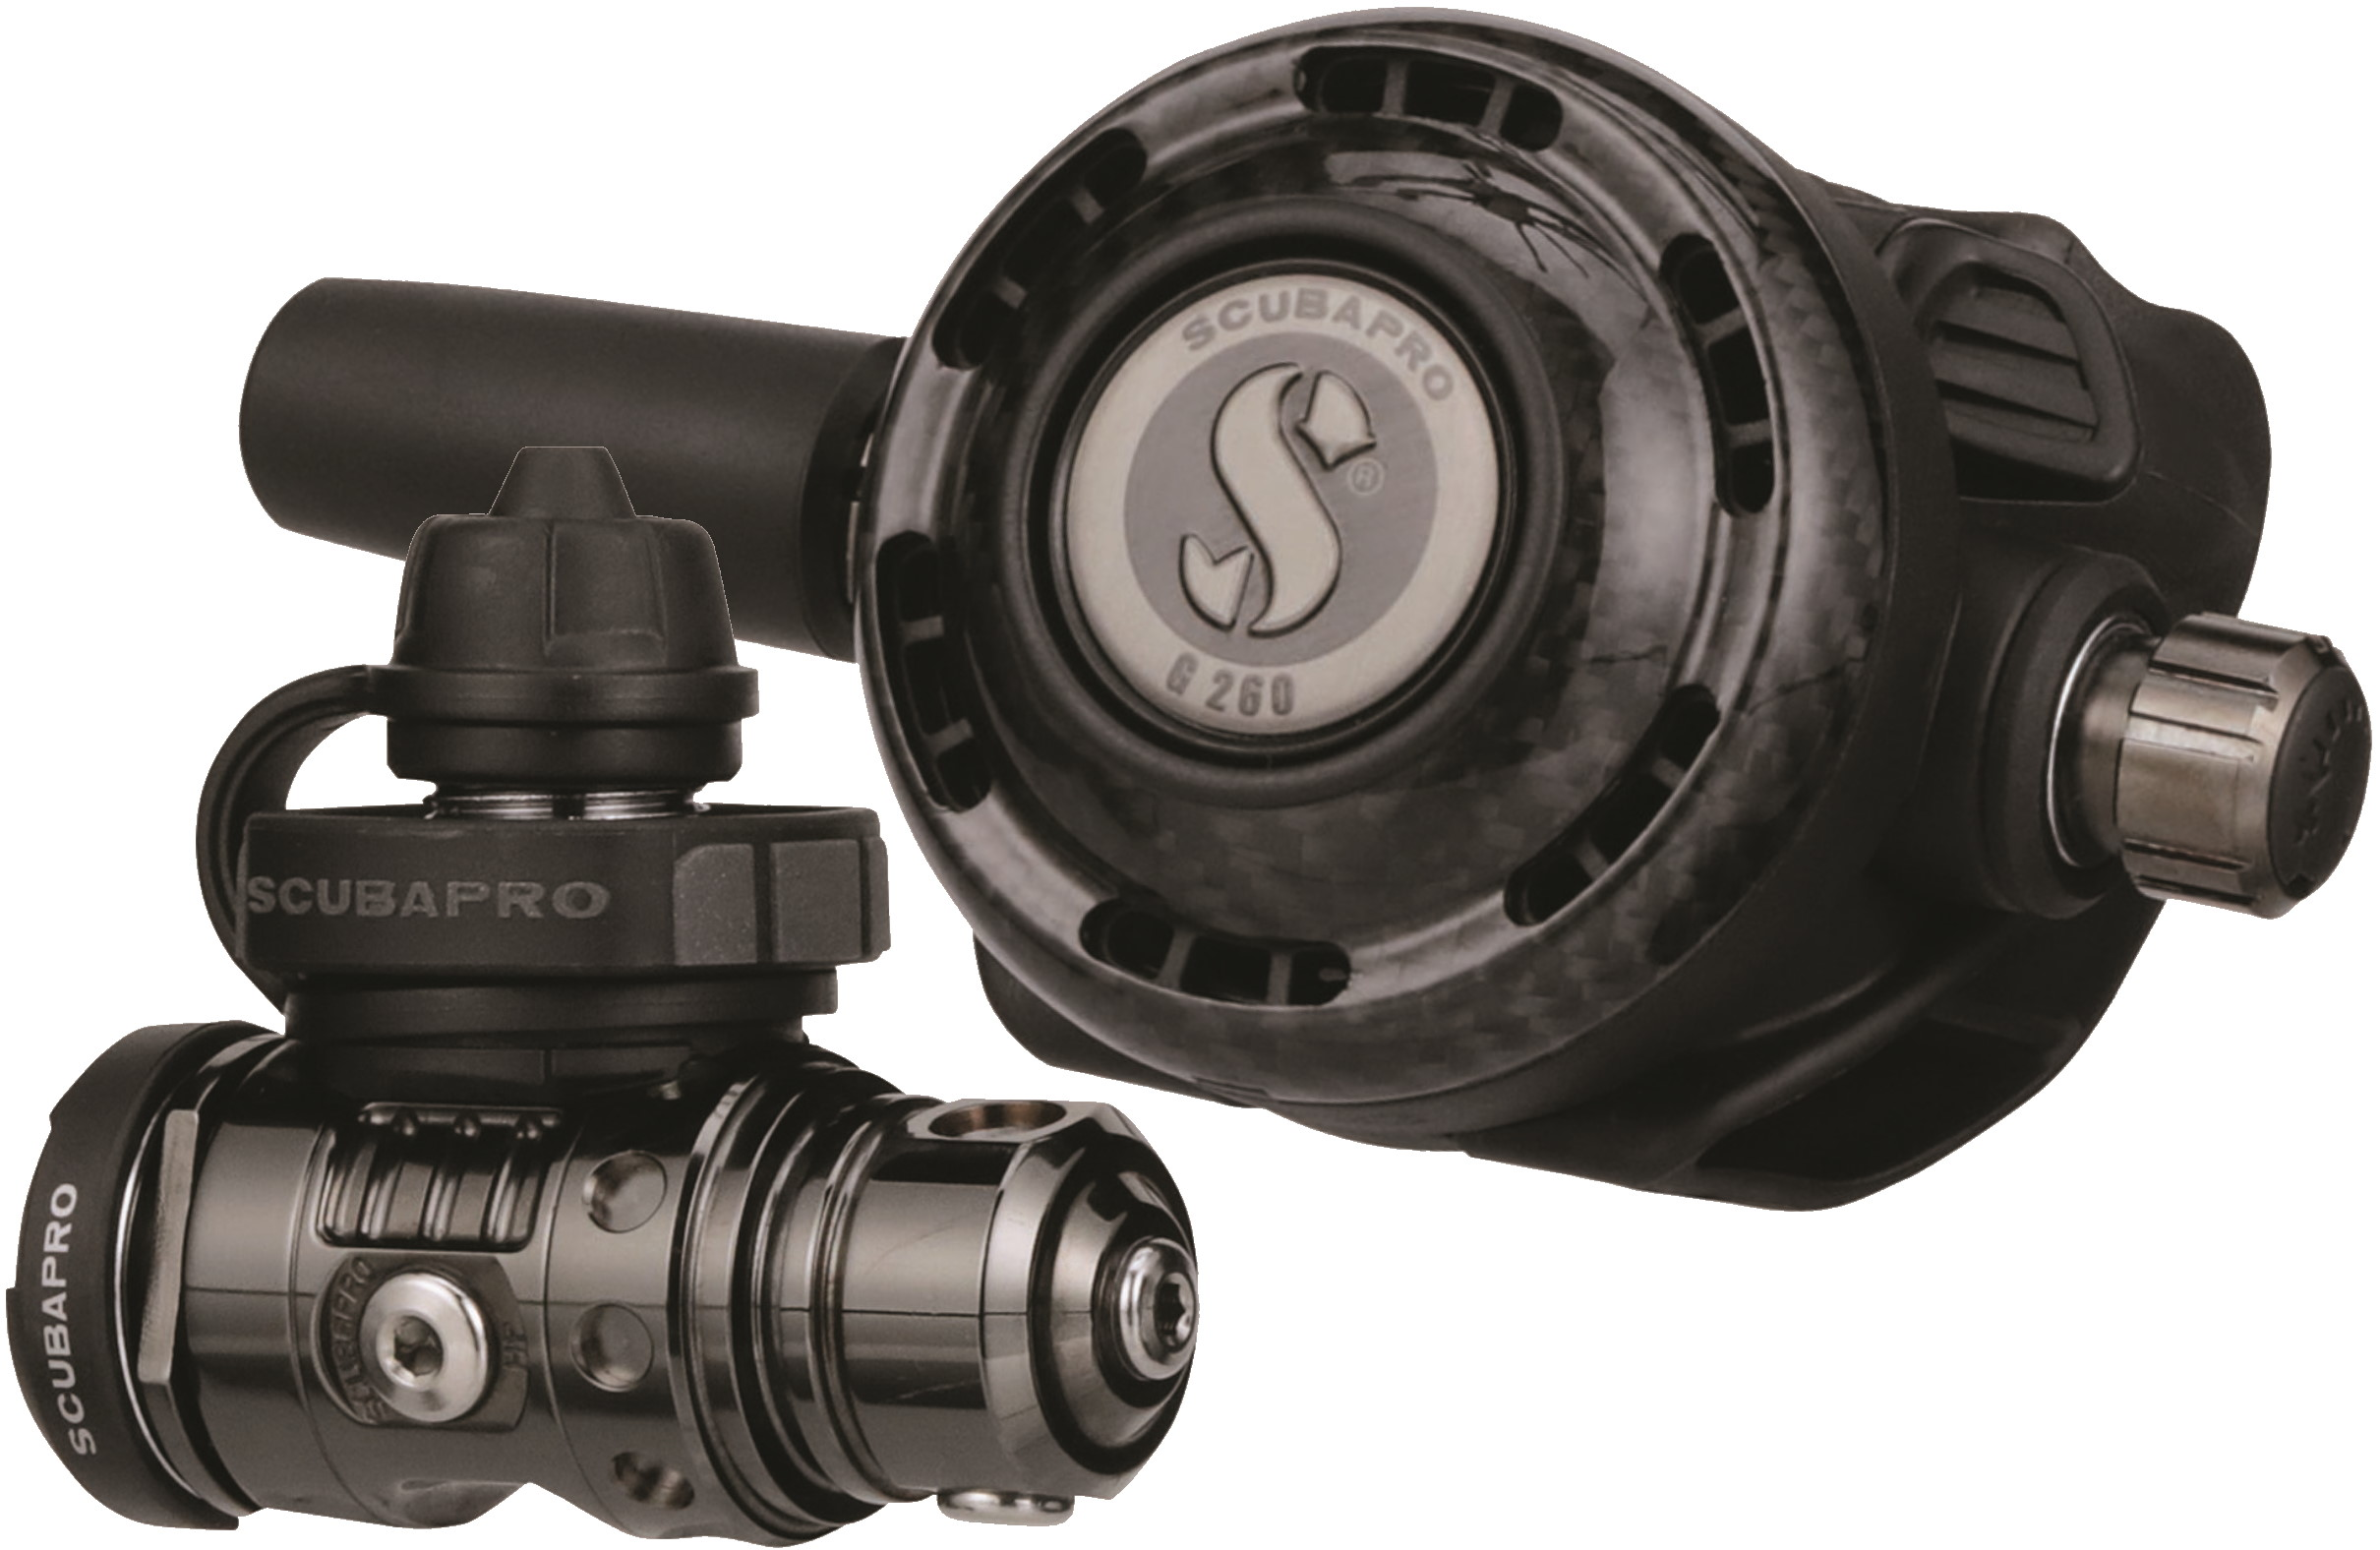 Водолазен регулатор Scubapro MK19 EVO BLACK TECH / G260 CARBON BLACK TECH – Scubapro